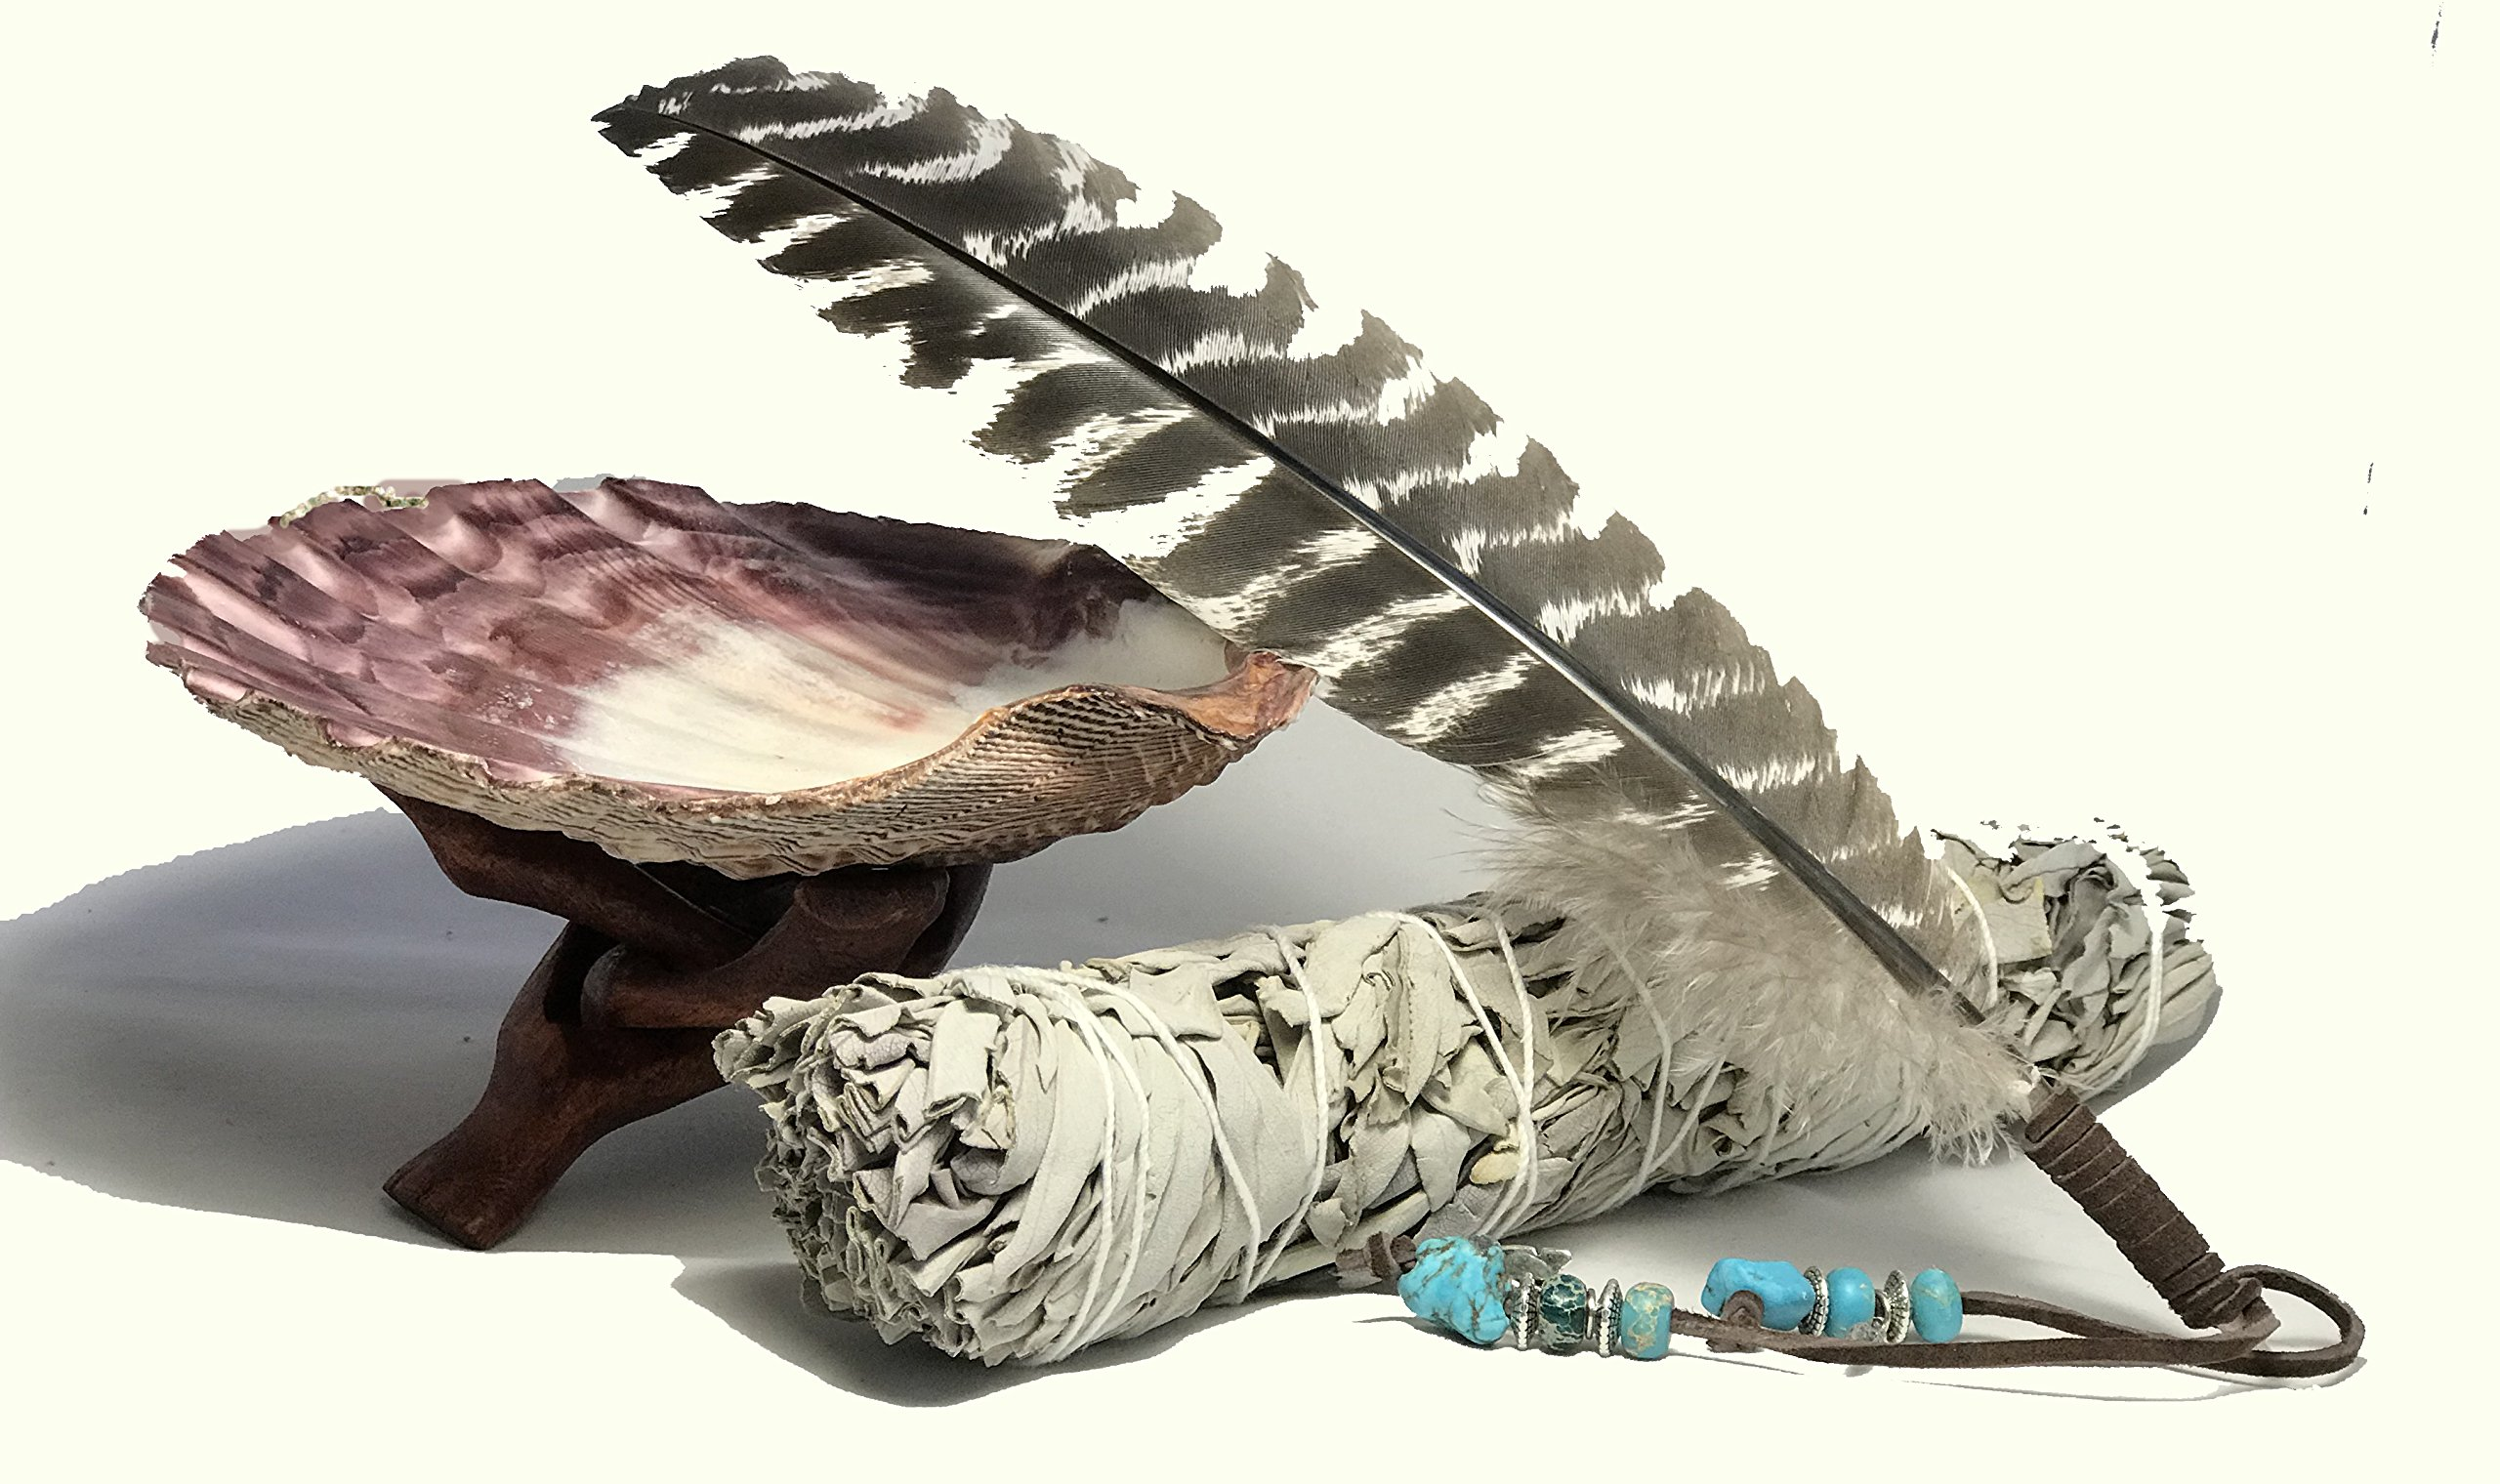 Large Beautiful Premium Lion Paw Shell, Wood Cobra Tripod Stand, Large White Sage Smudge Stick and a Hand Decorated Feather. Home Blessing and Cleansing Ritual Instructions included.